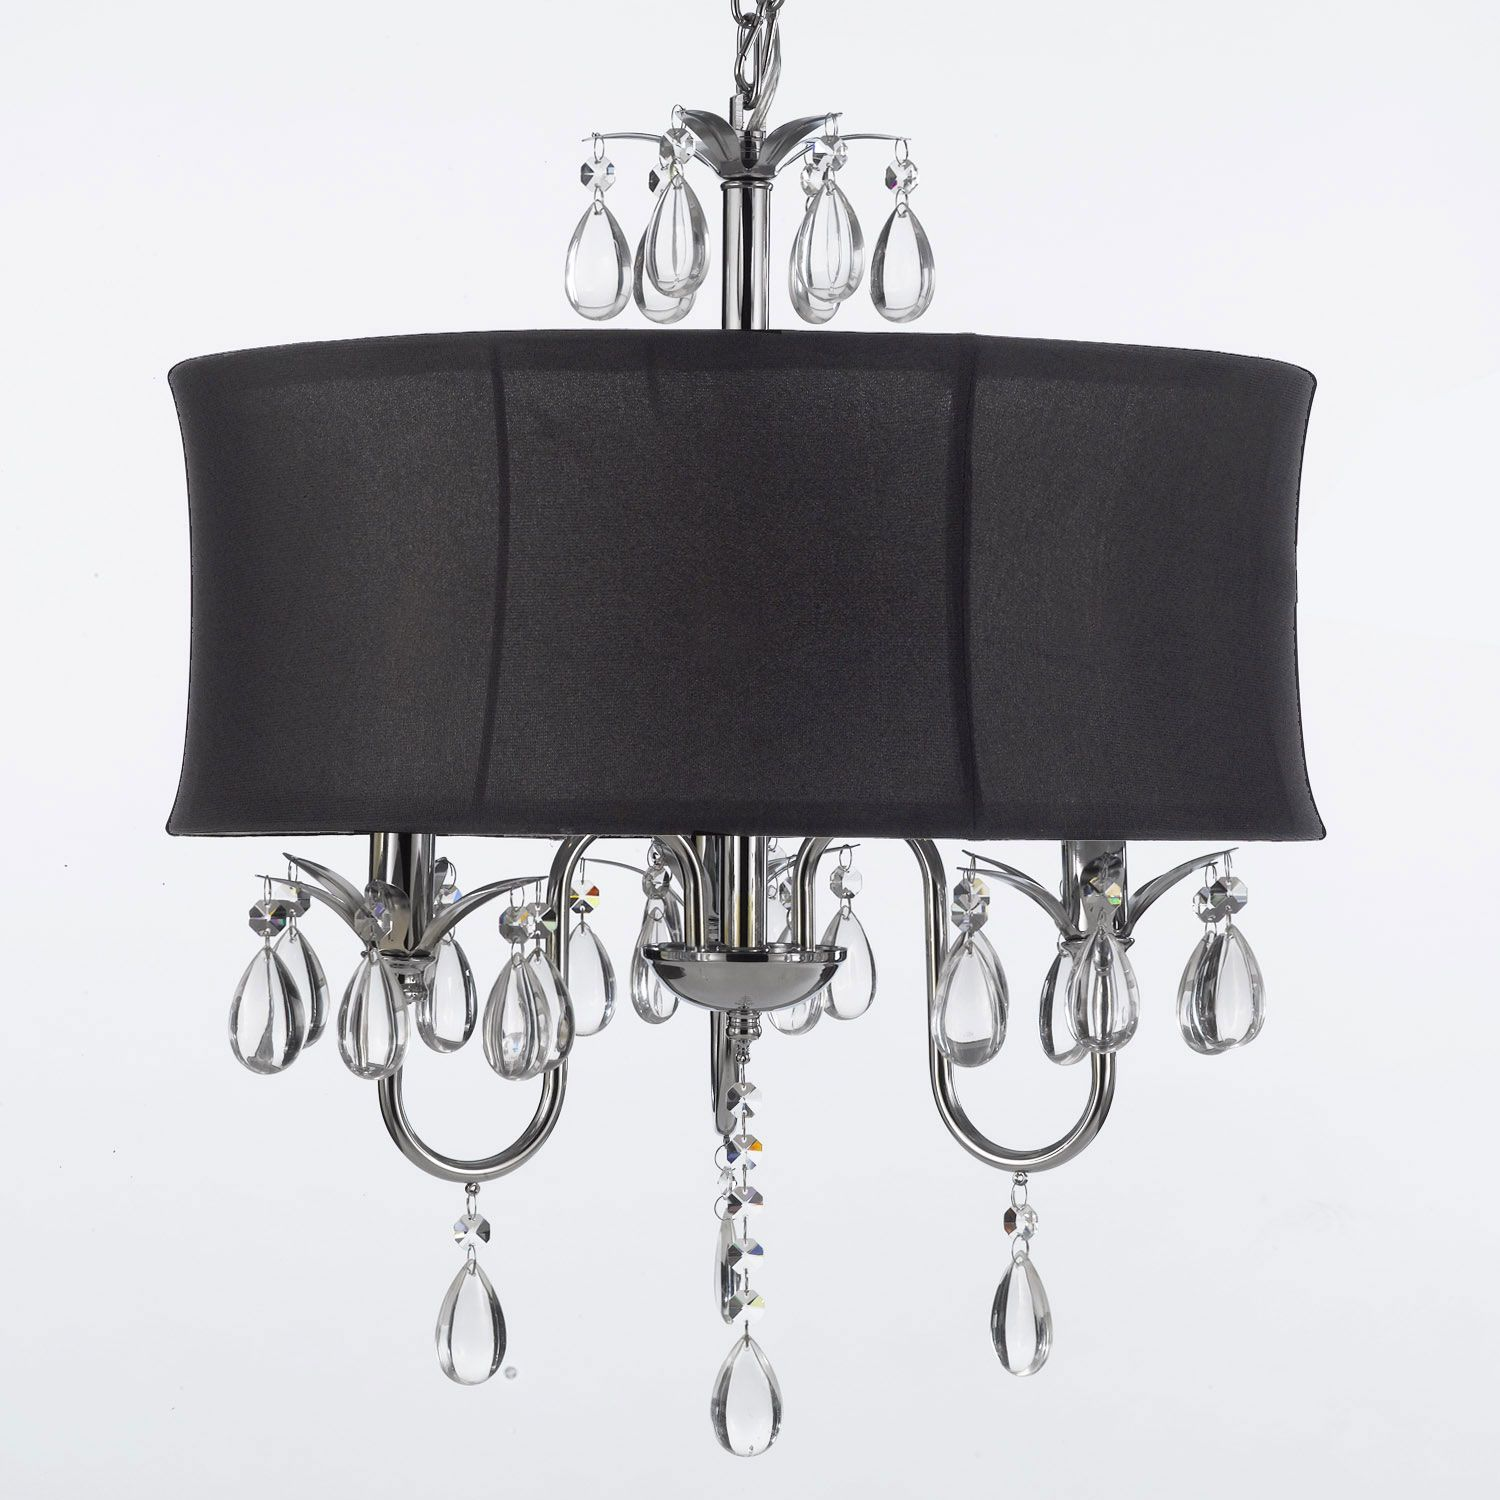 Gblack chandeliers with shades crystal chandelier with large